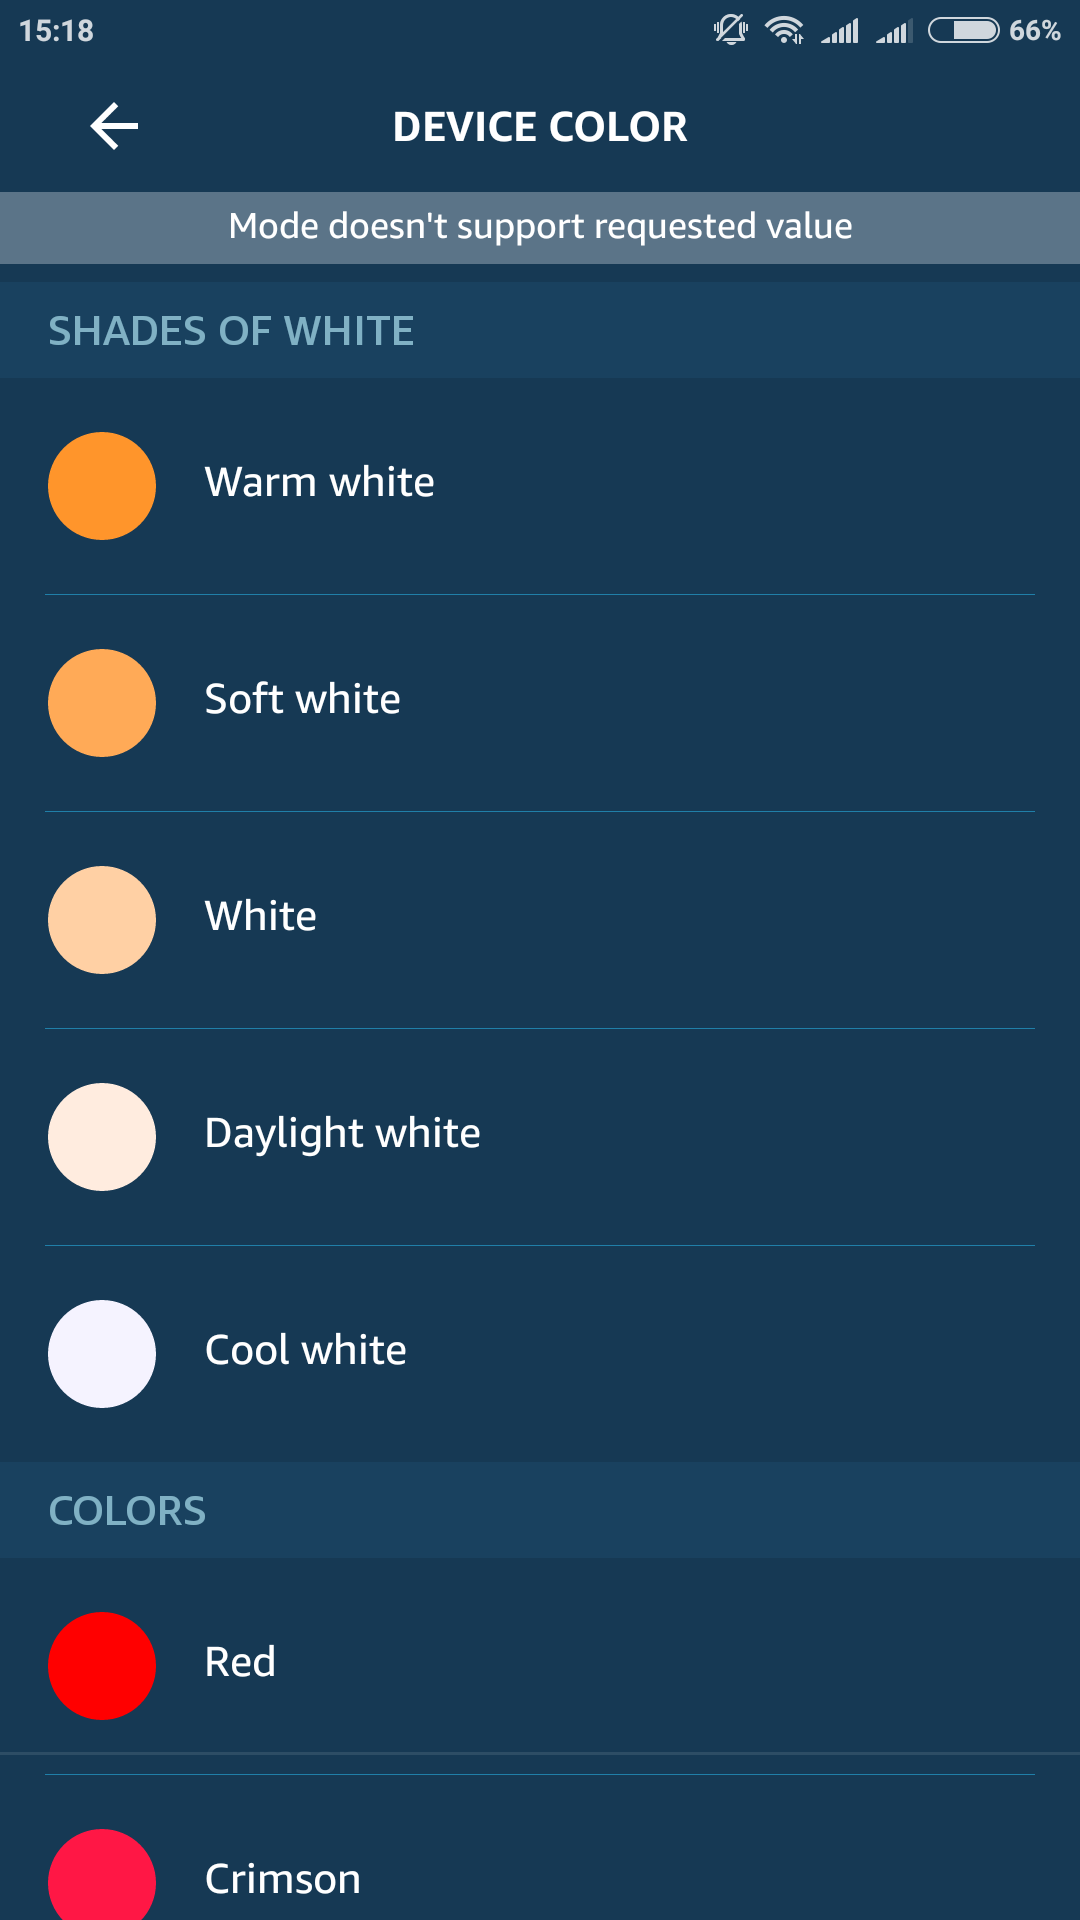 White shades not selectable with Alexa since firmware update